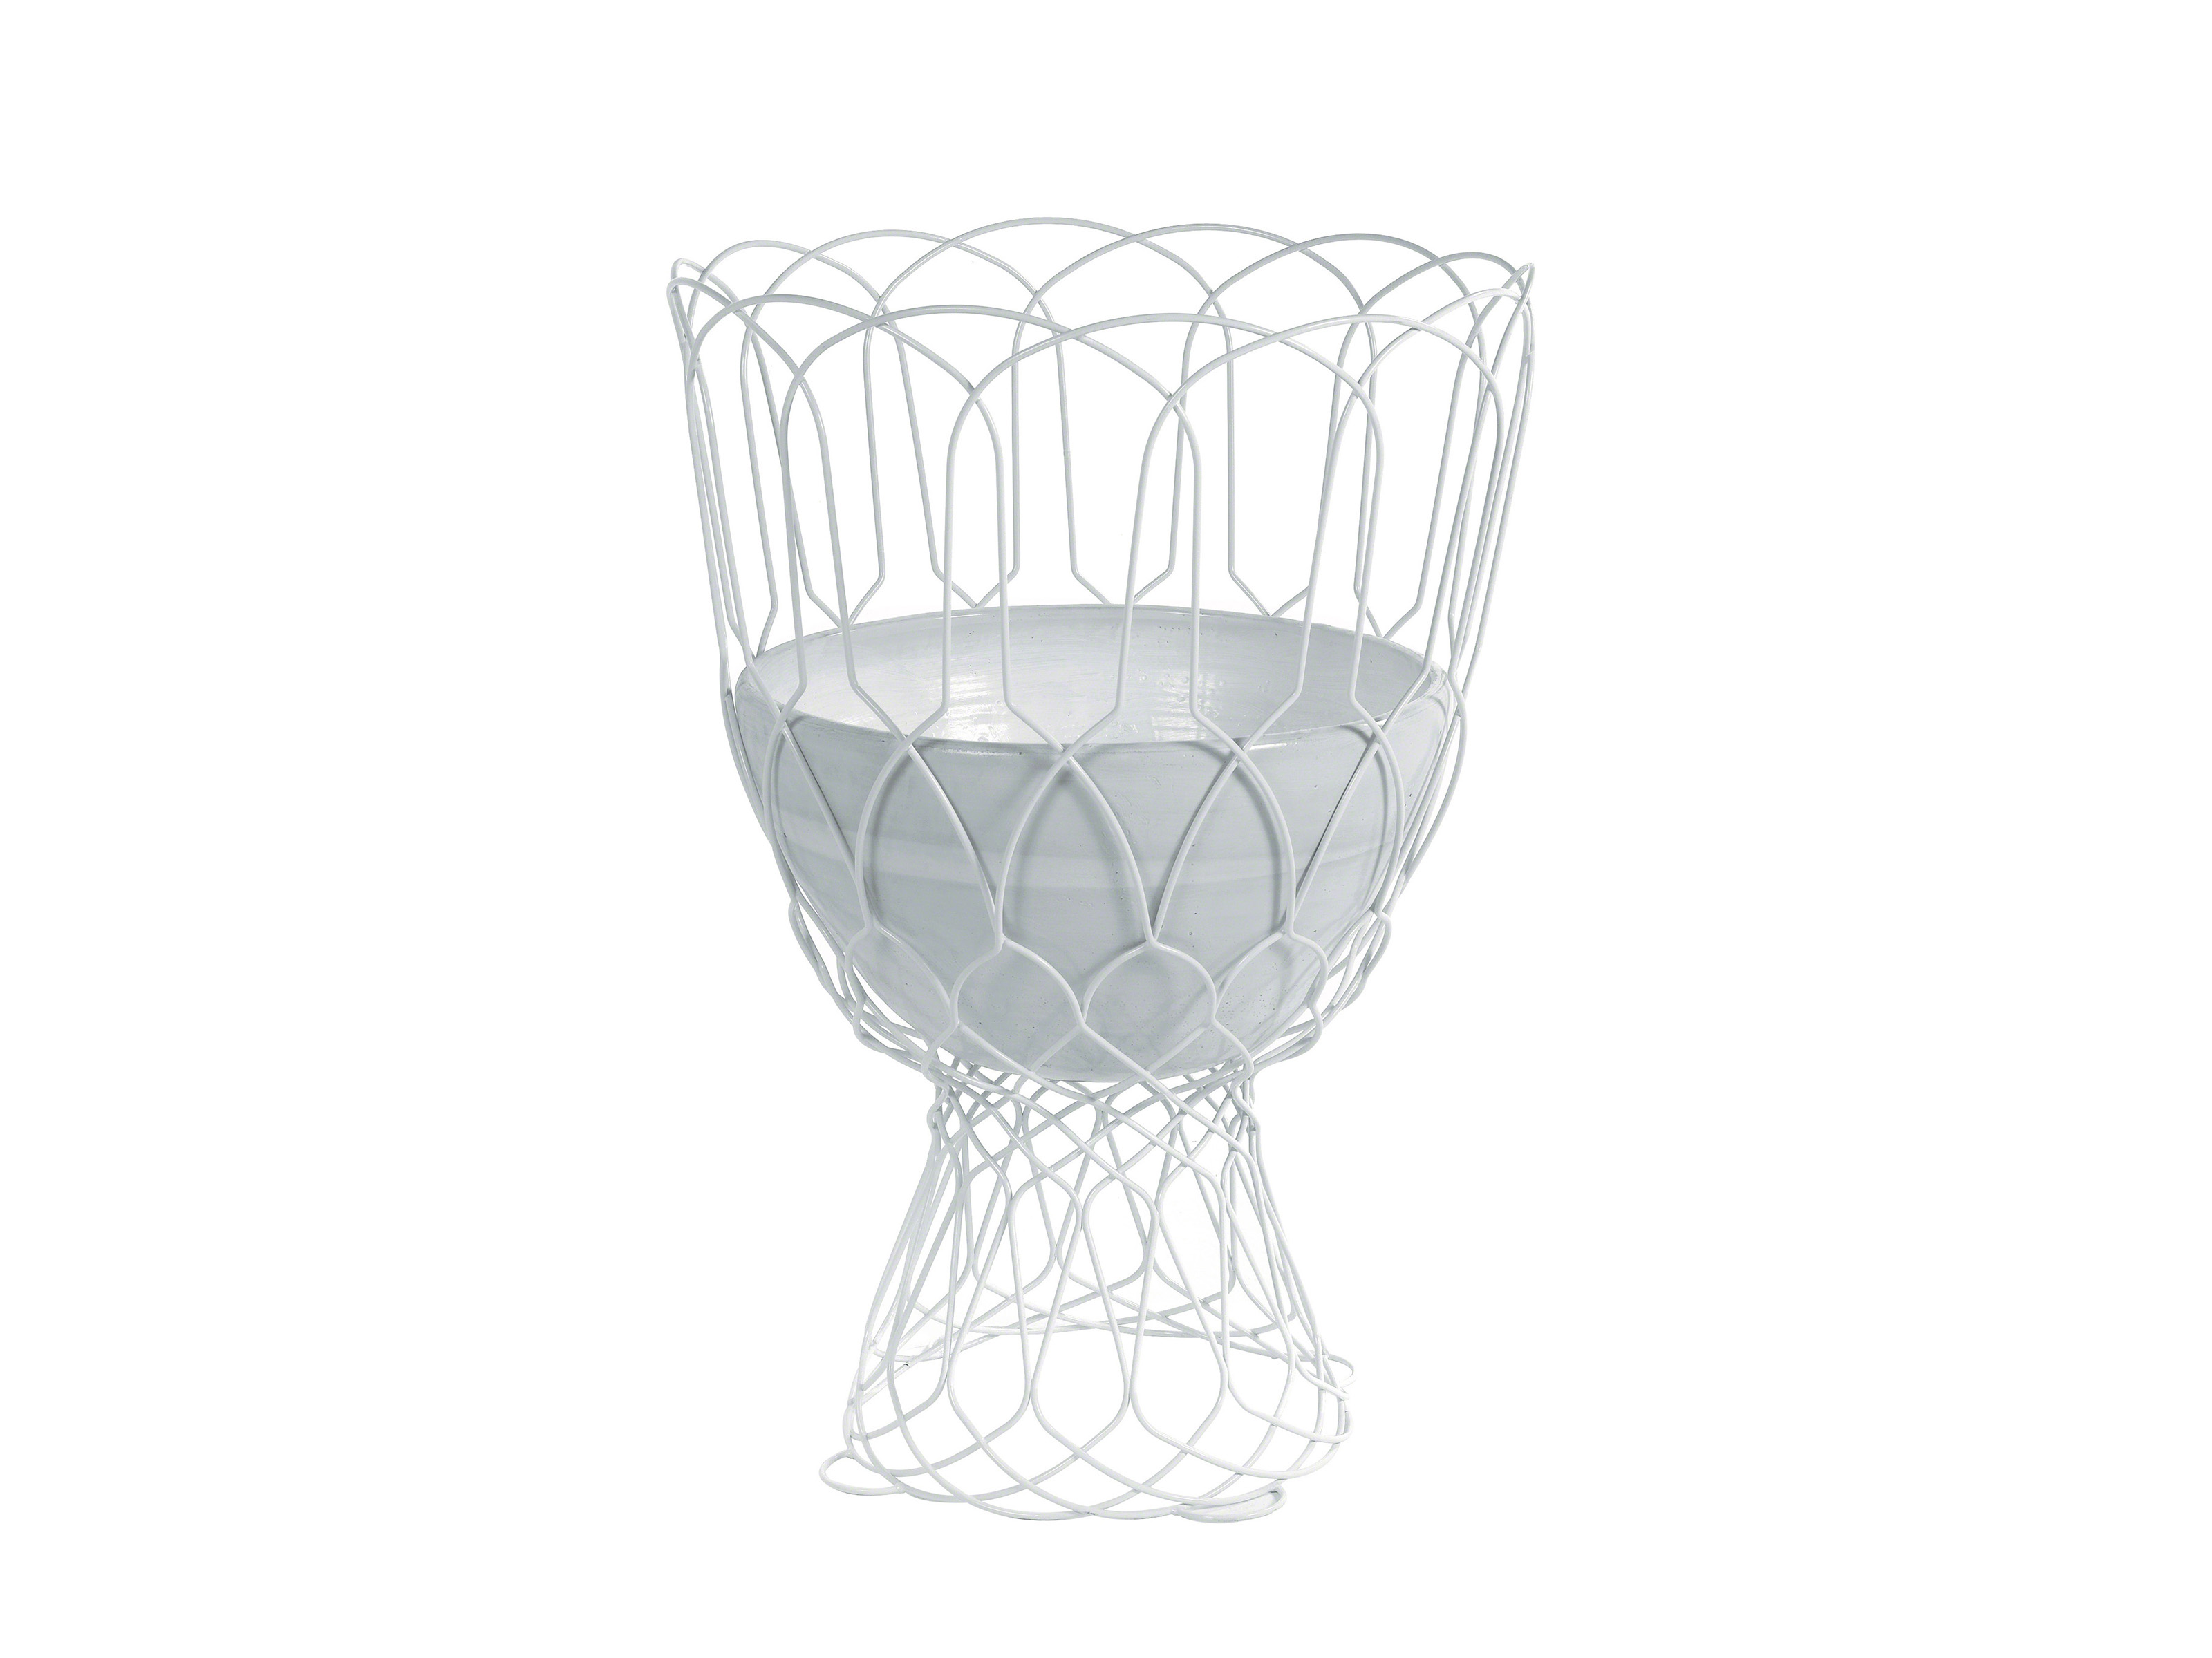 Large white outdoor mesh vase by Coalesse